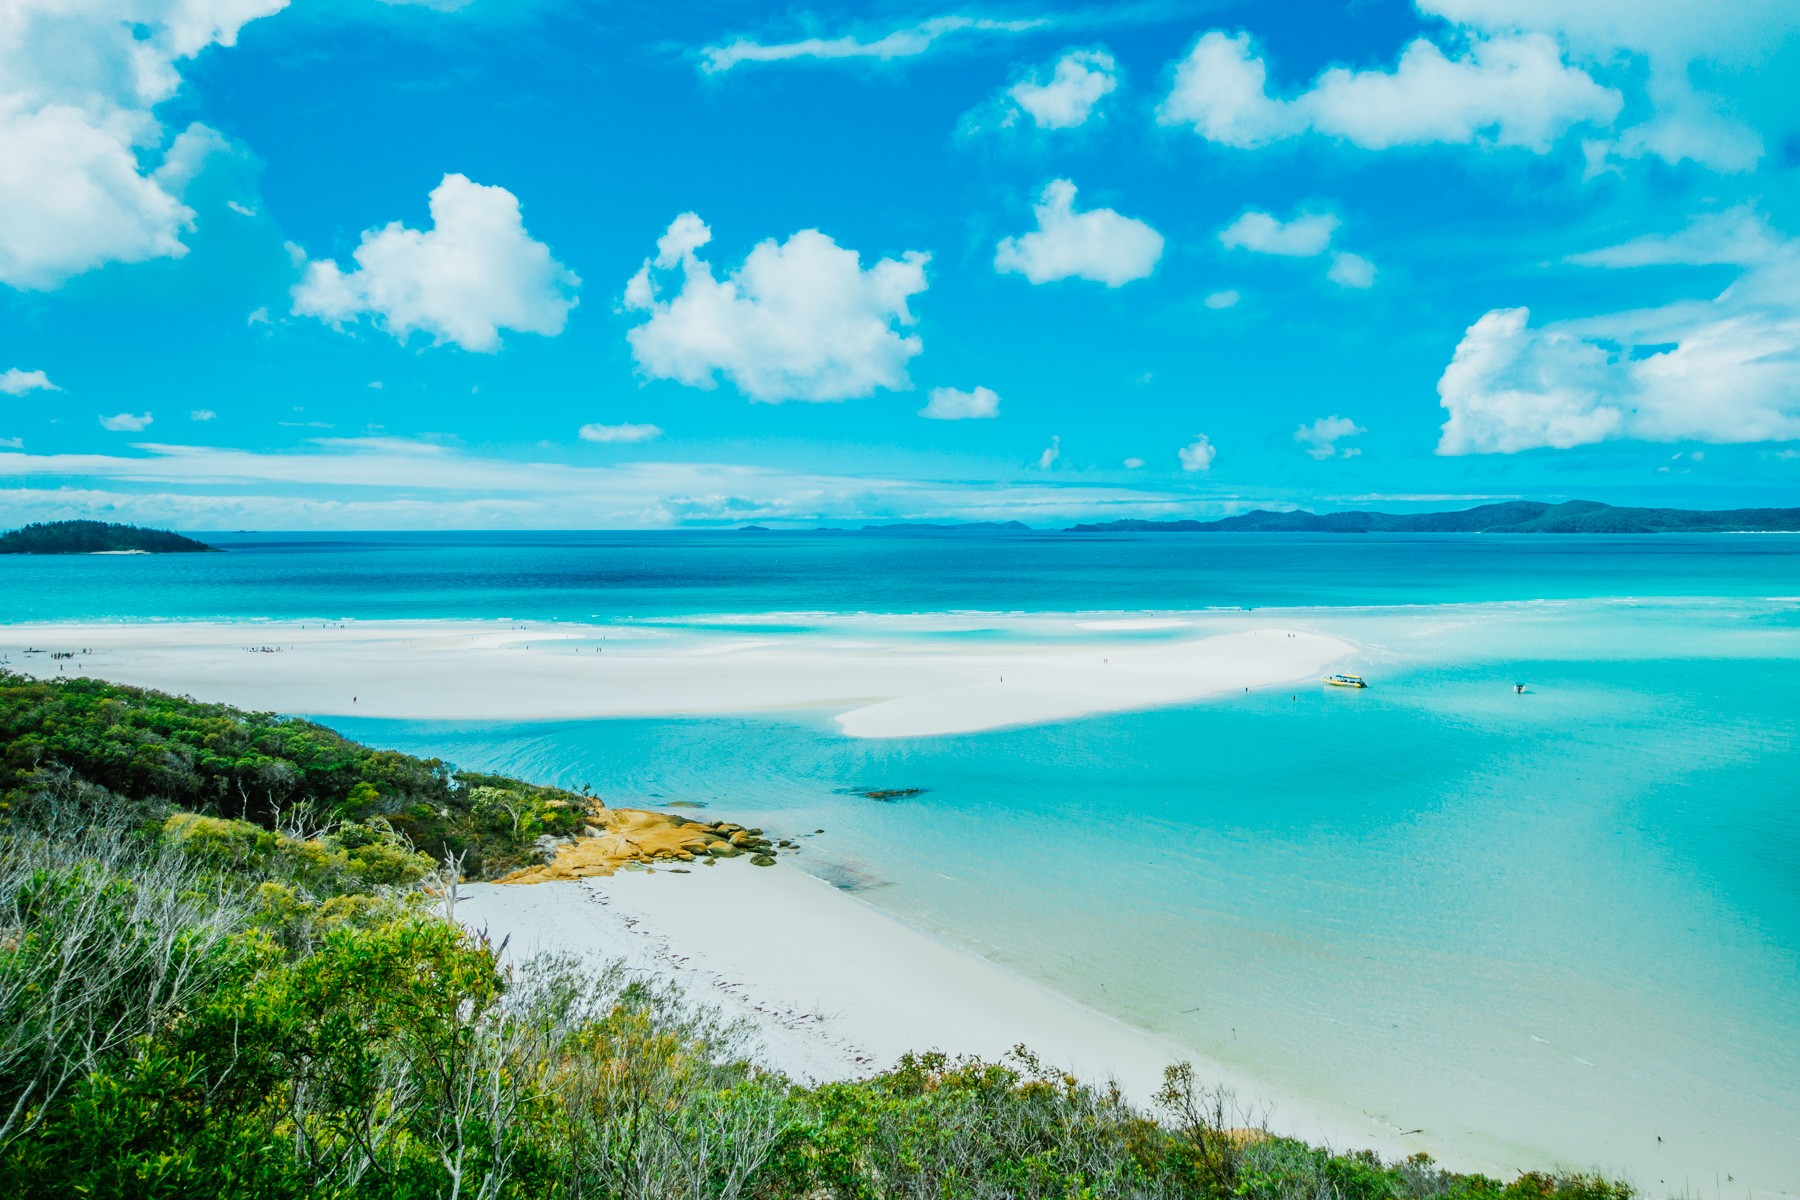 In beeld: de Whitsunday eilanden in Queensland